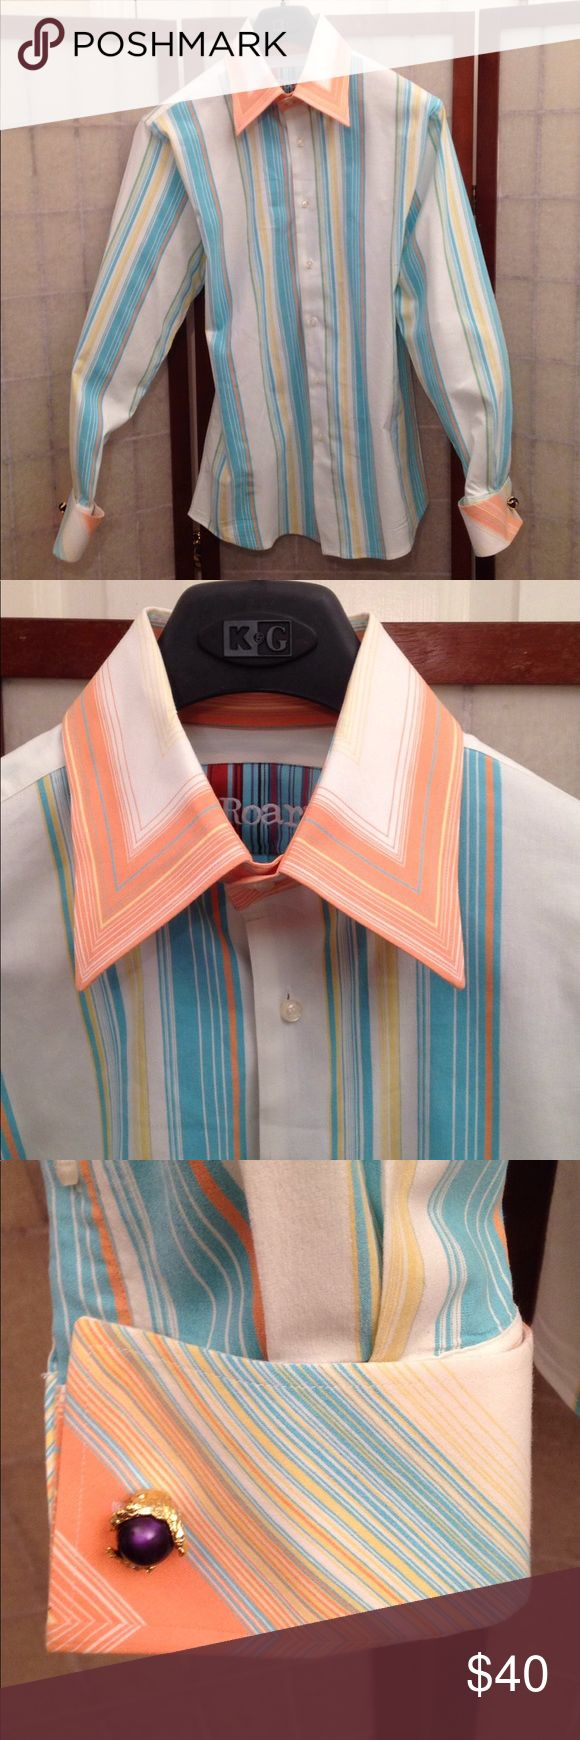 Stylish Dress Shirt WOW! This will be best looking shirt in your wardrobe. And even better when modeled by you. Feels as good as it looks. All cotton, no pocket.  Gently worn and lovingly cared for. Pix of unique triple button collar shows attention to details. Long sleeves for elegant cuff links (sold separately).   From SmokeFree home next to PostOffice so shipping is FAST! ROAR Shirts Dress Shirts